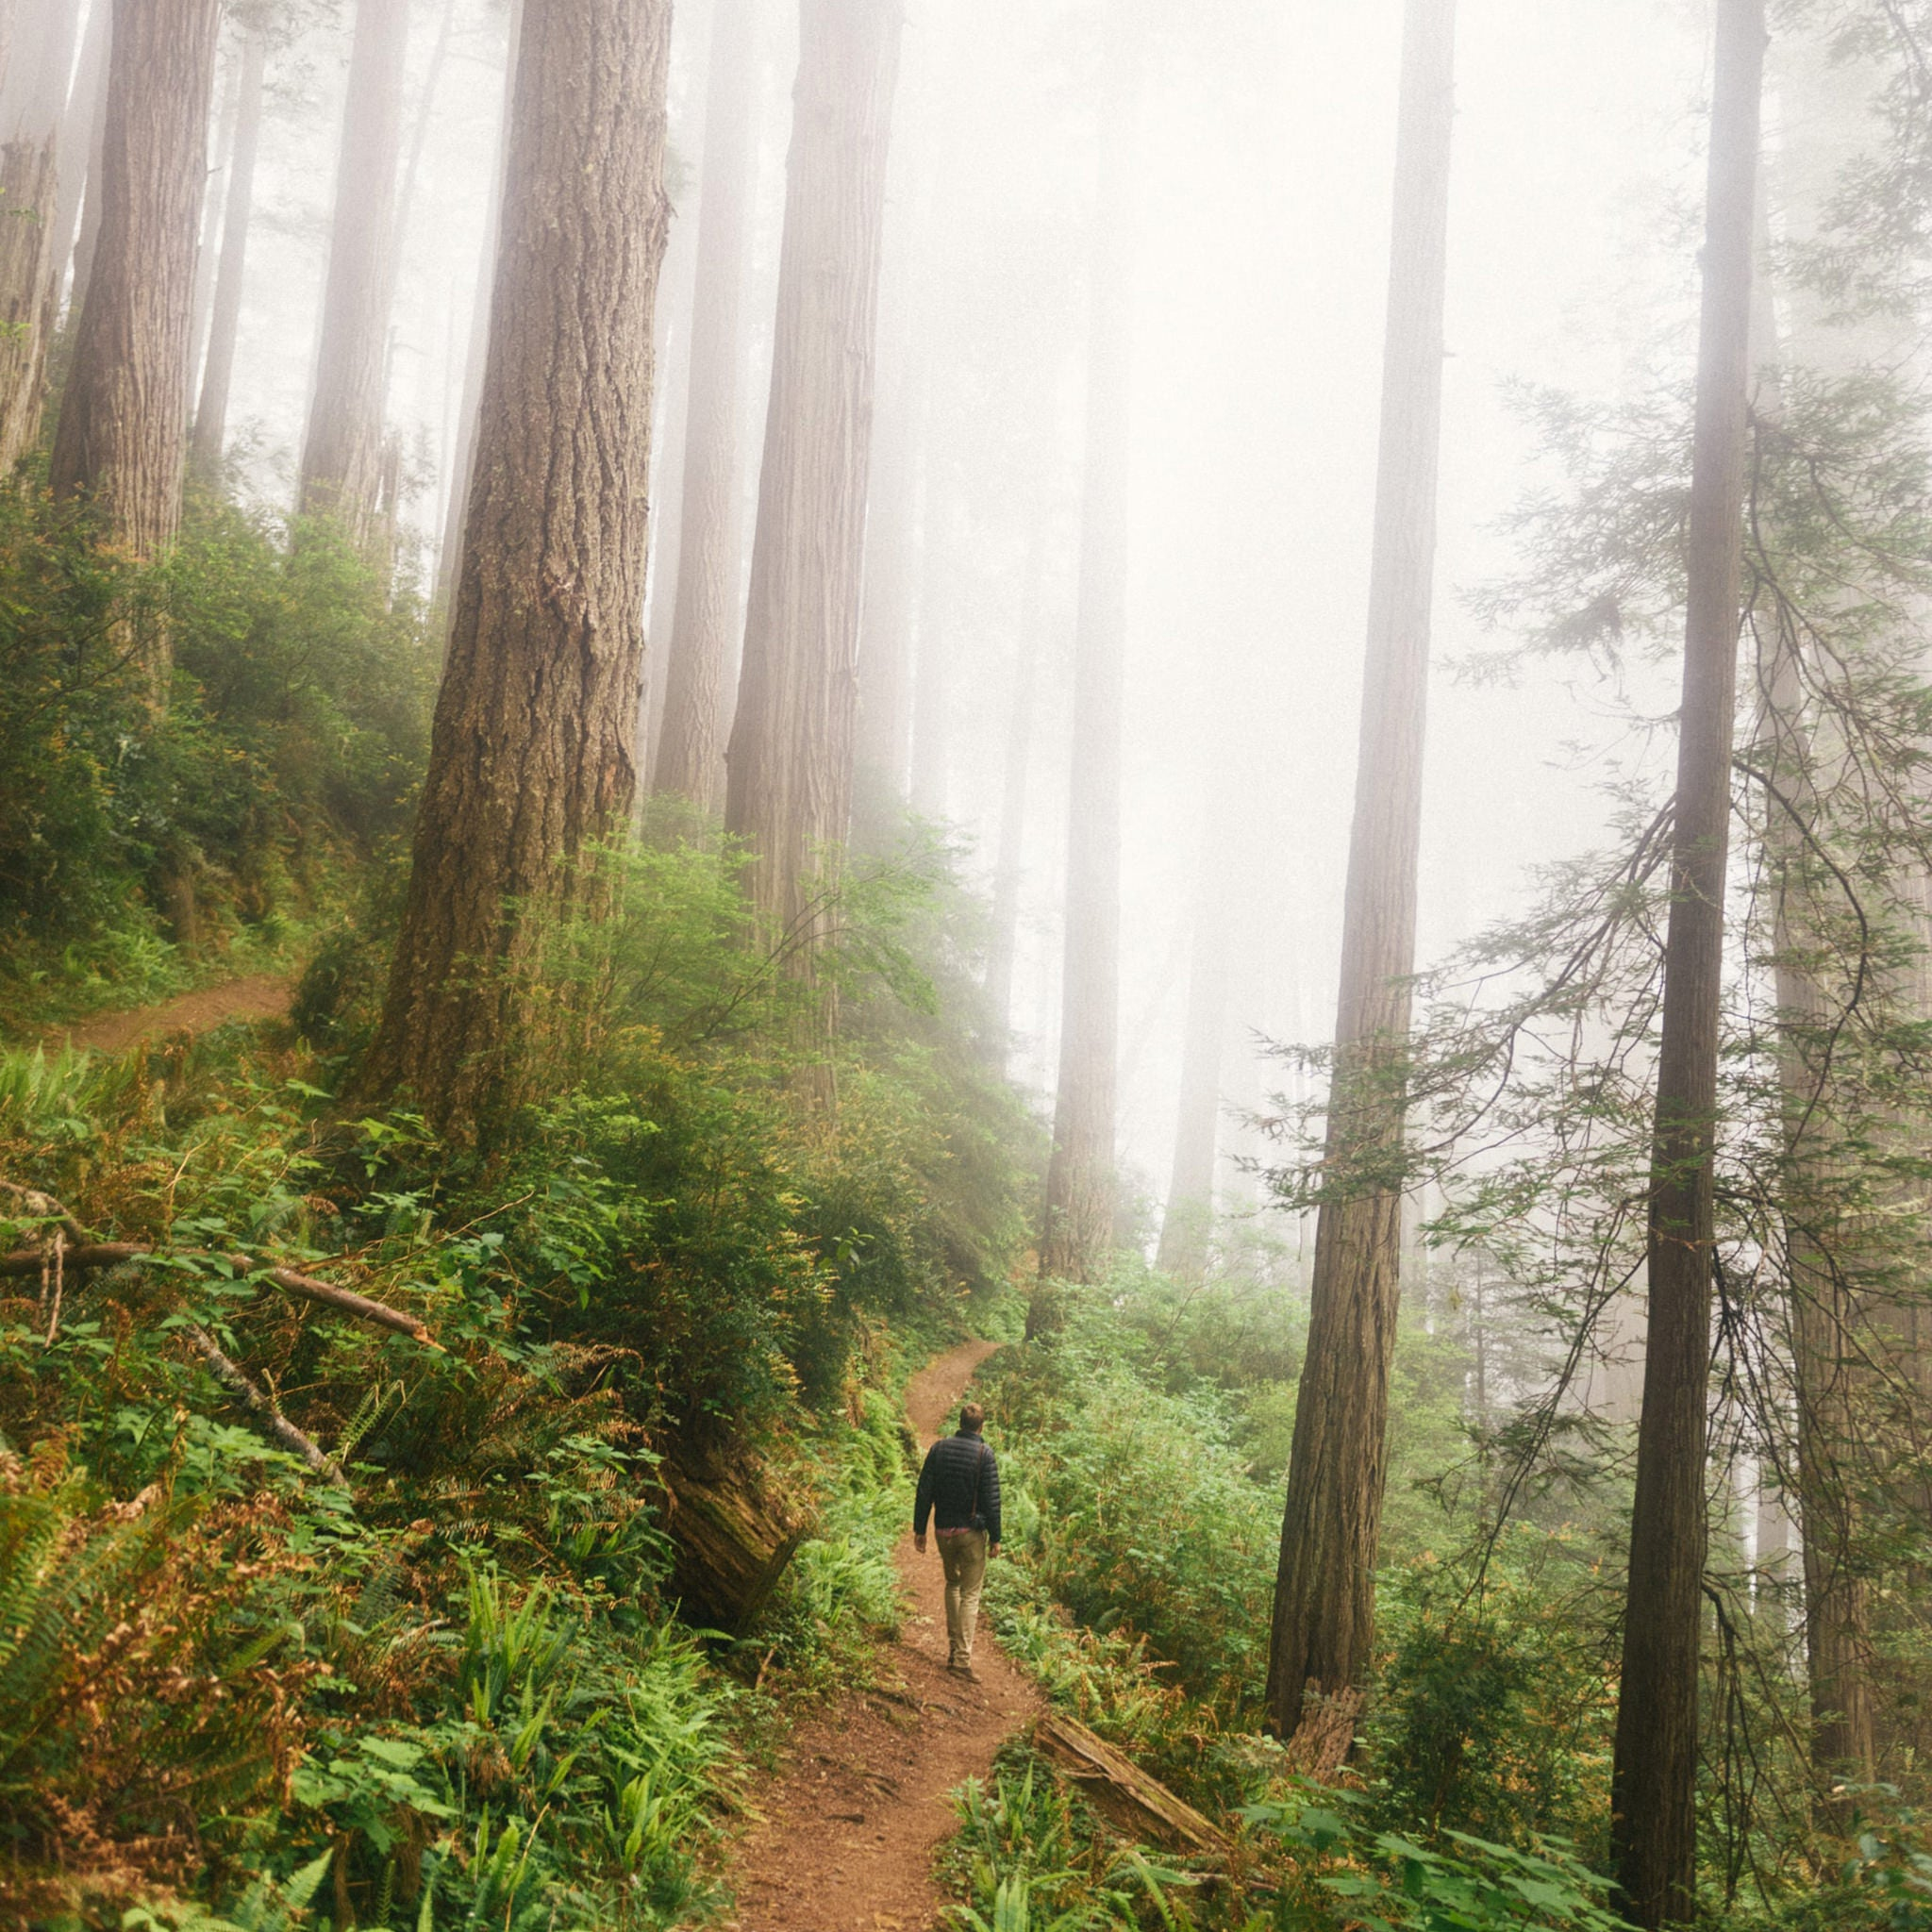 Image of person walking through a misty forest.